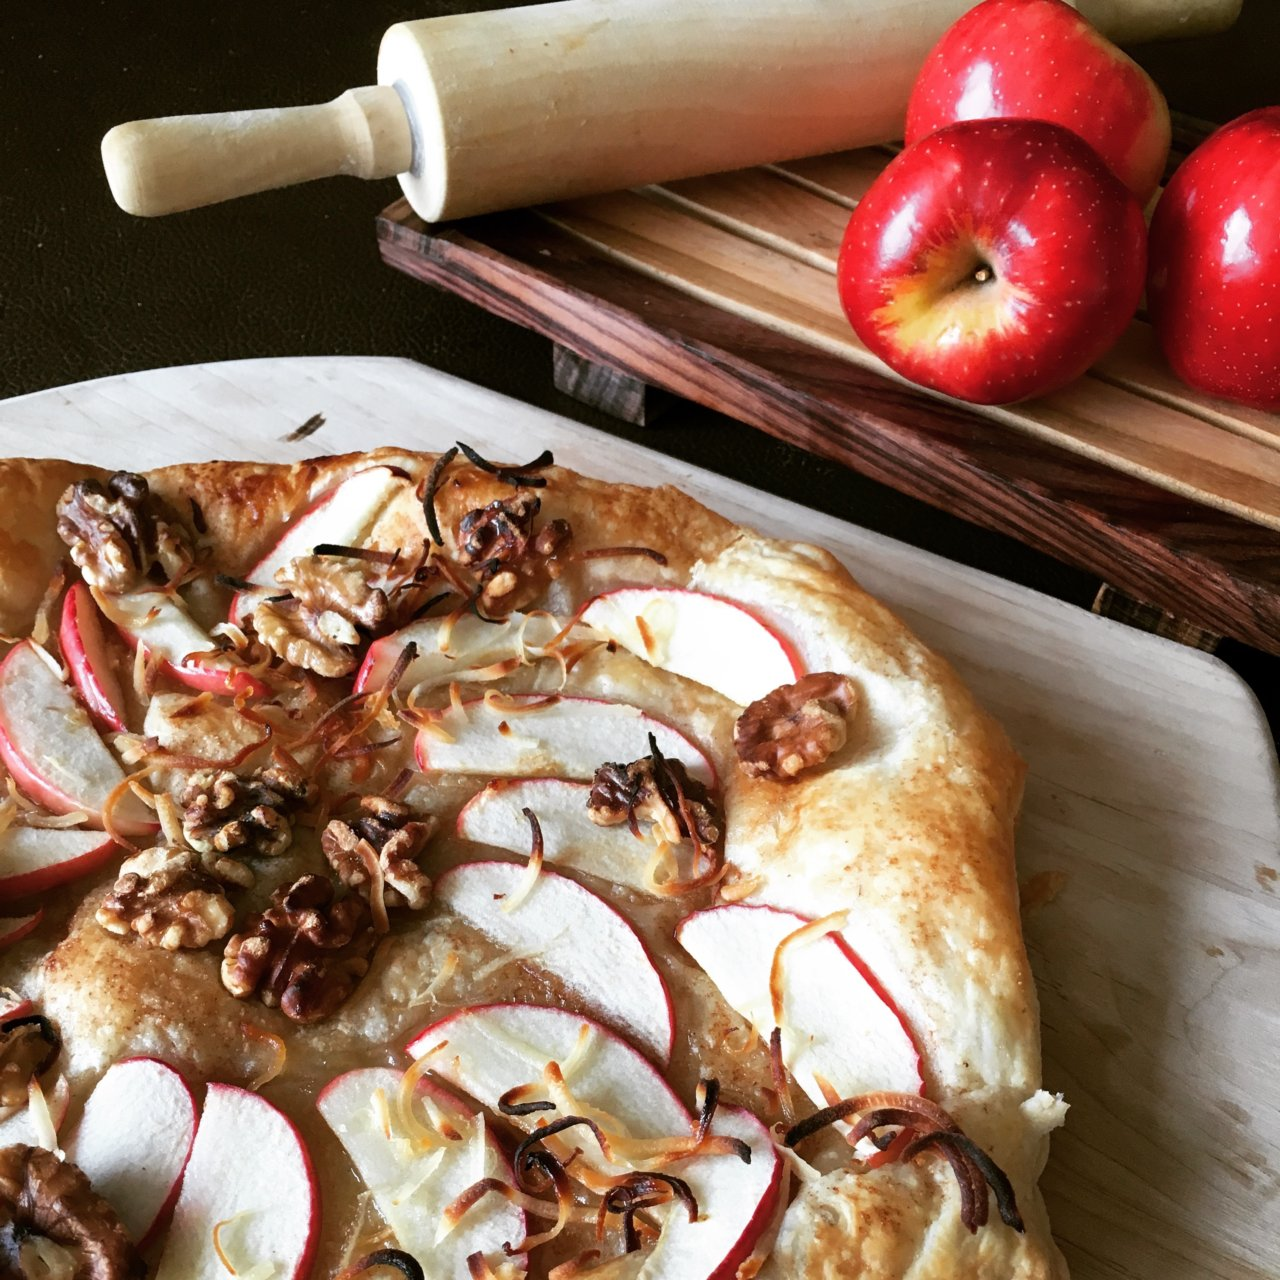 Apple-Walnut-Dessert-Pizza-1280x1280.jpg